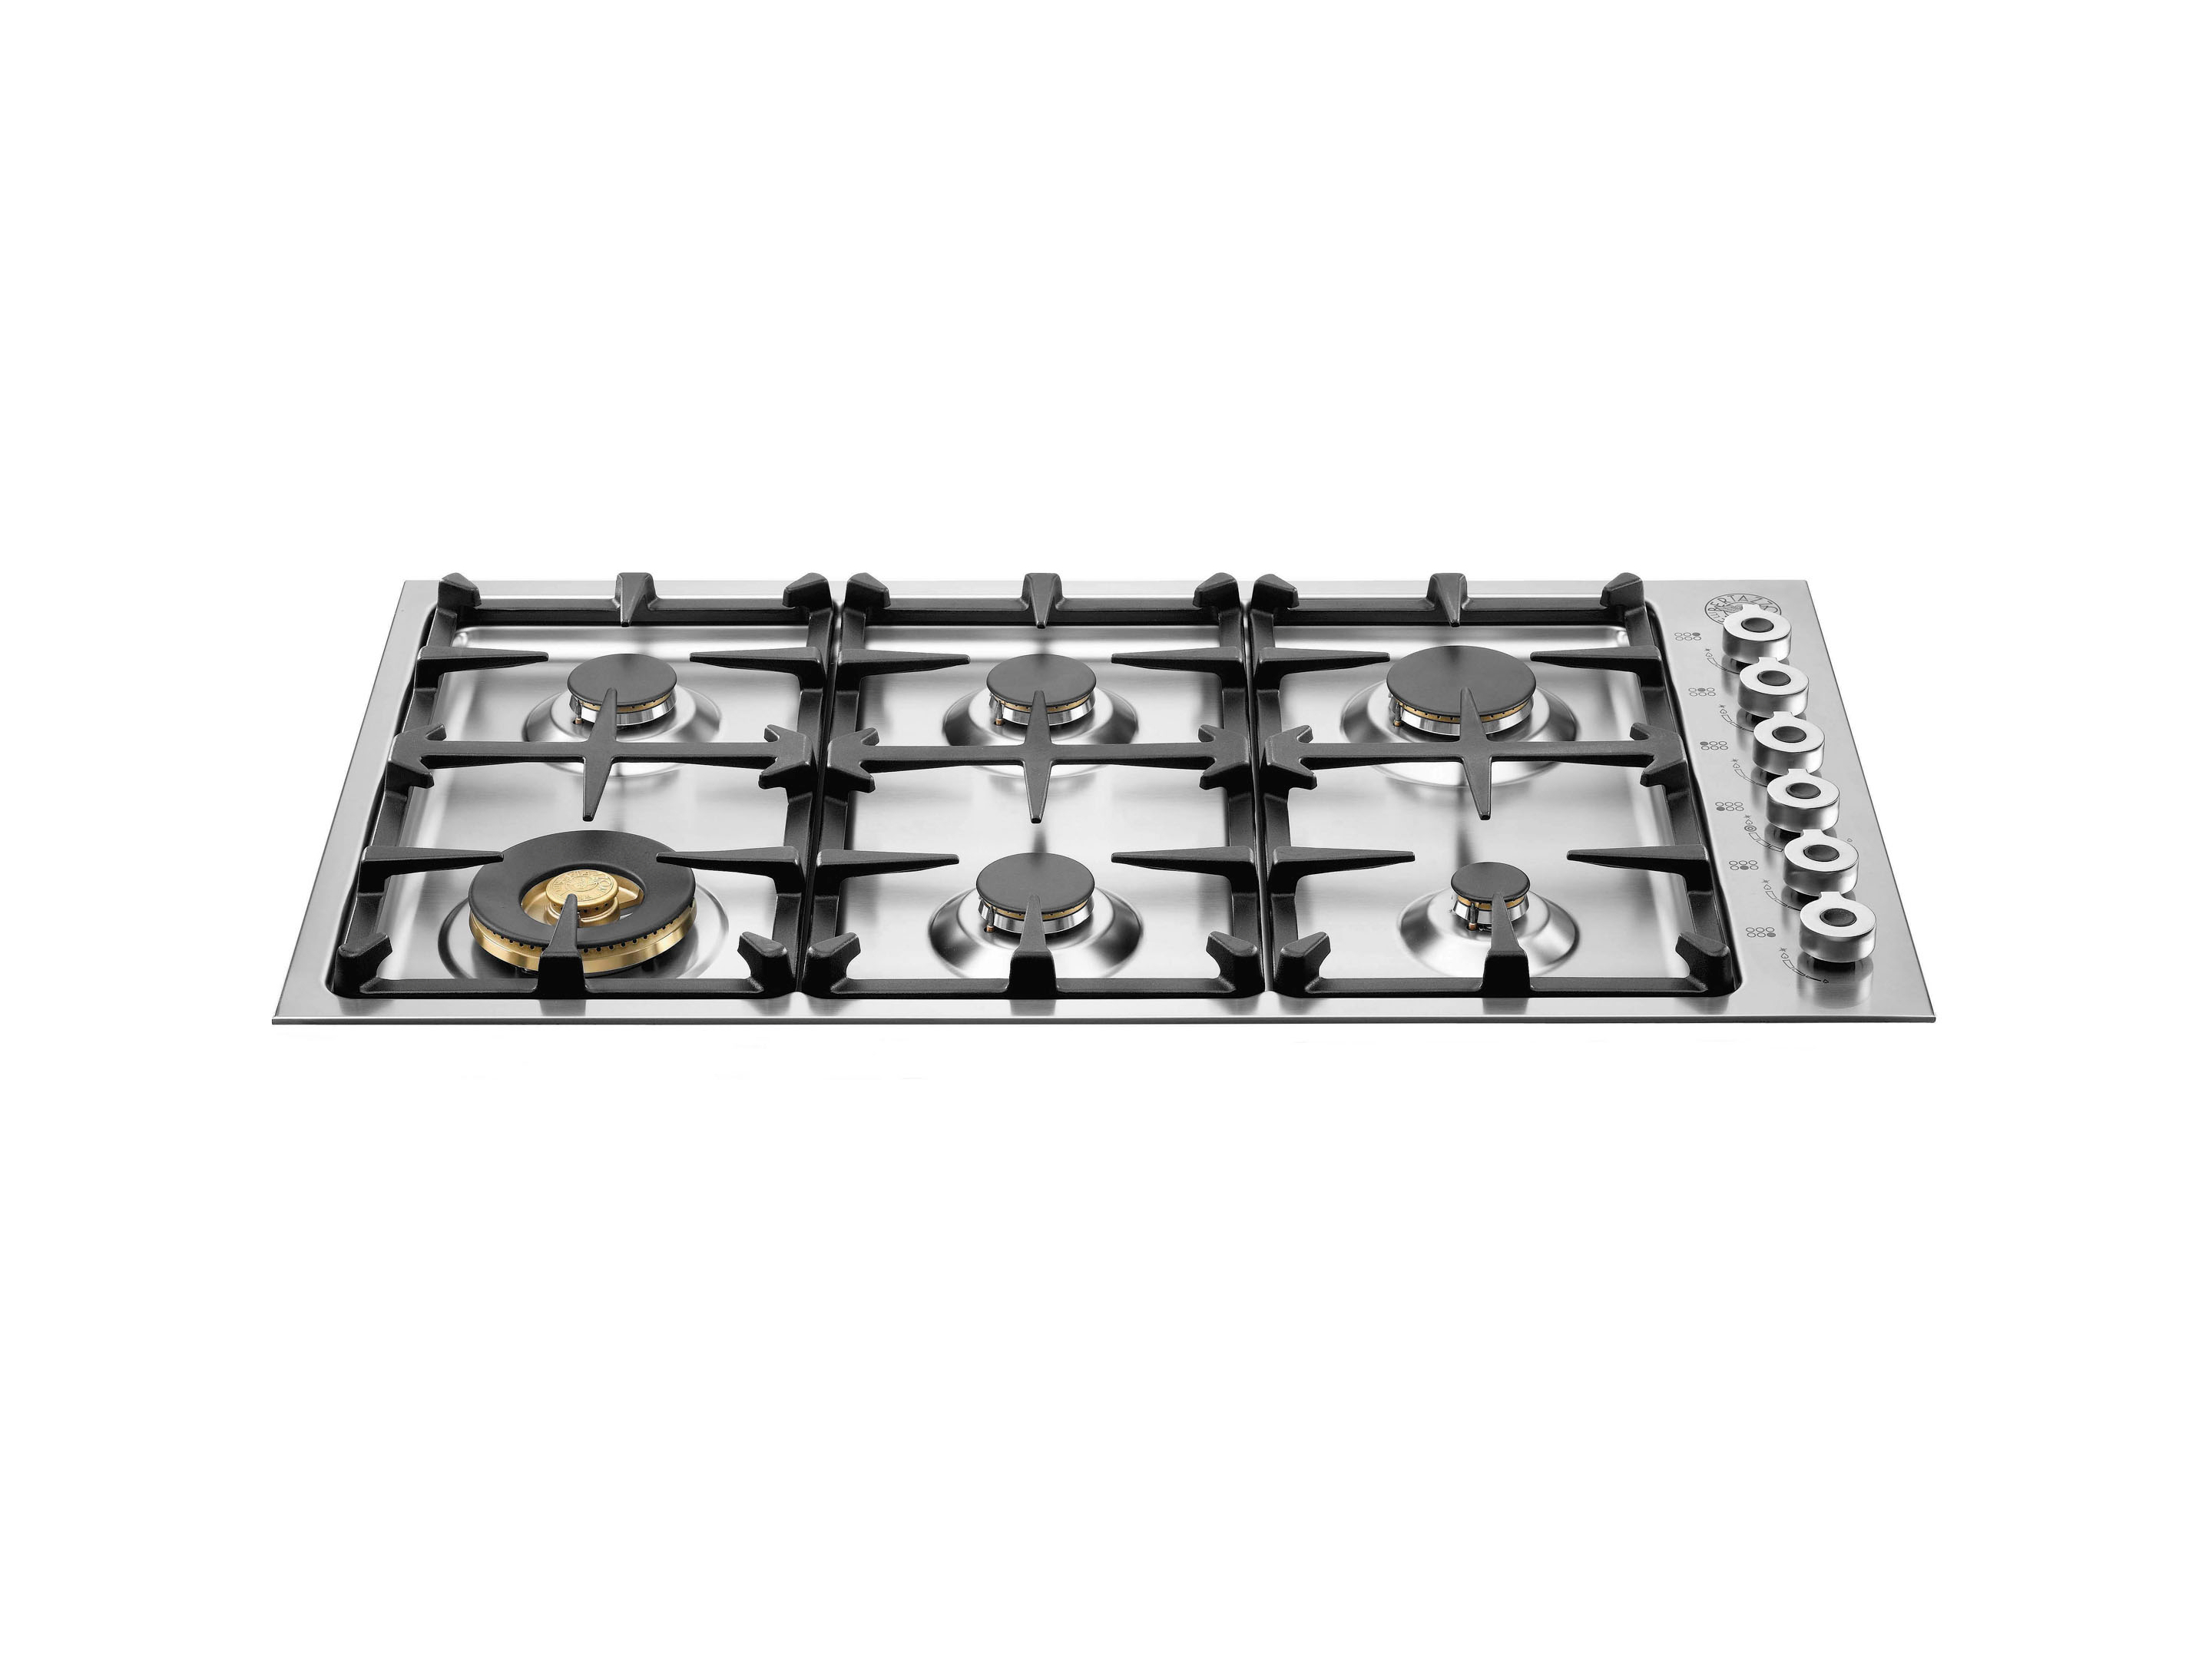 92 6-burner hob, low edge 4mm | Bertazzoni - Stainless